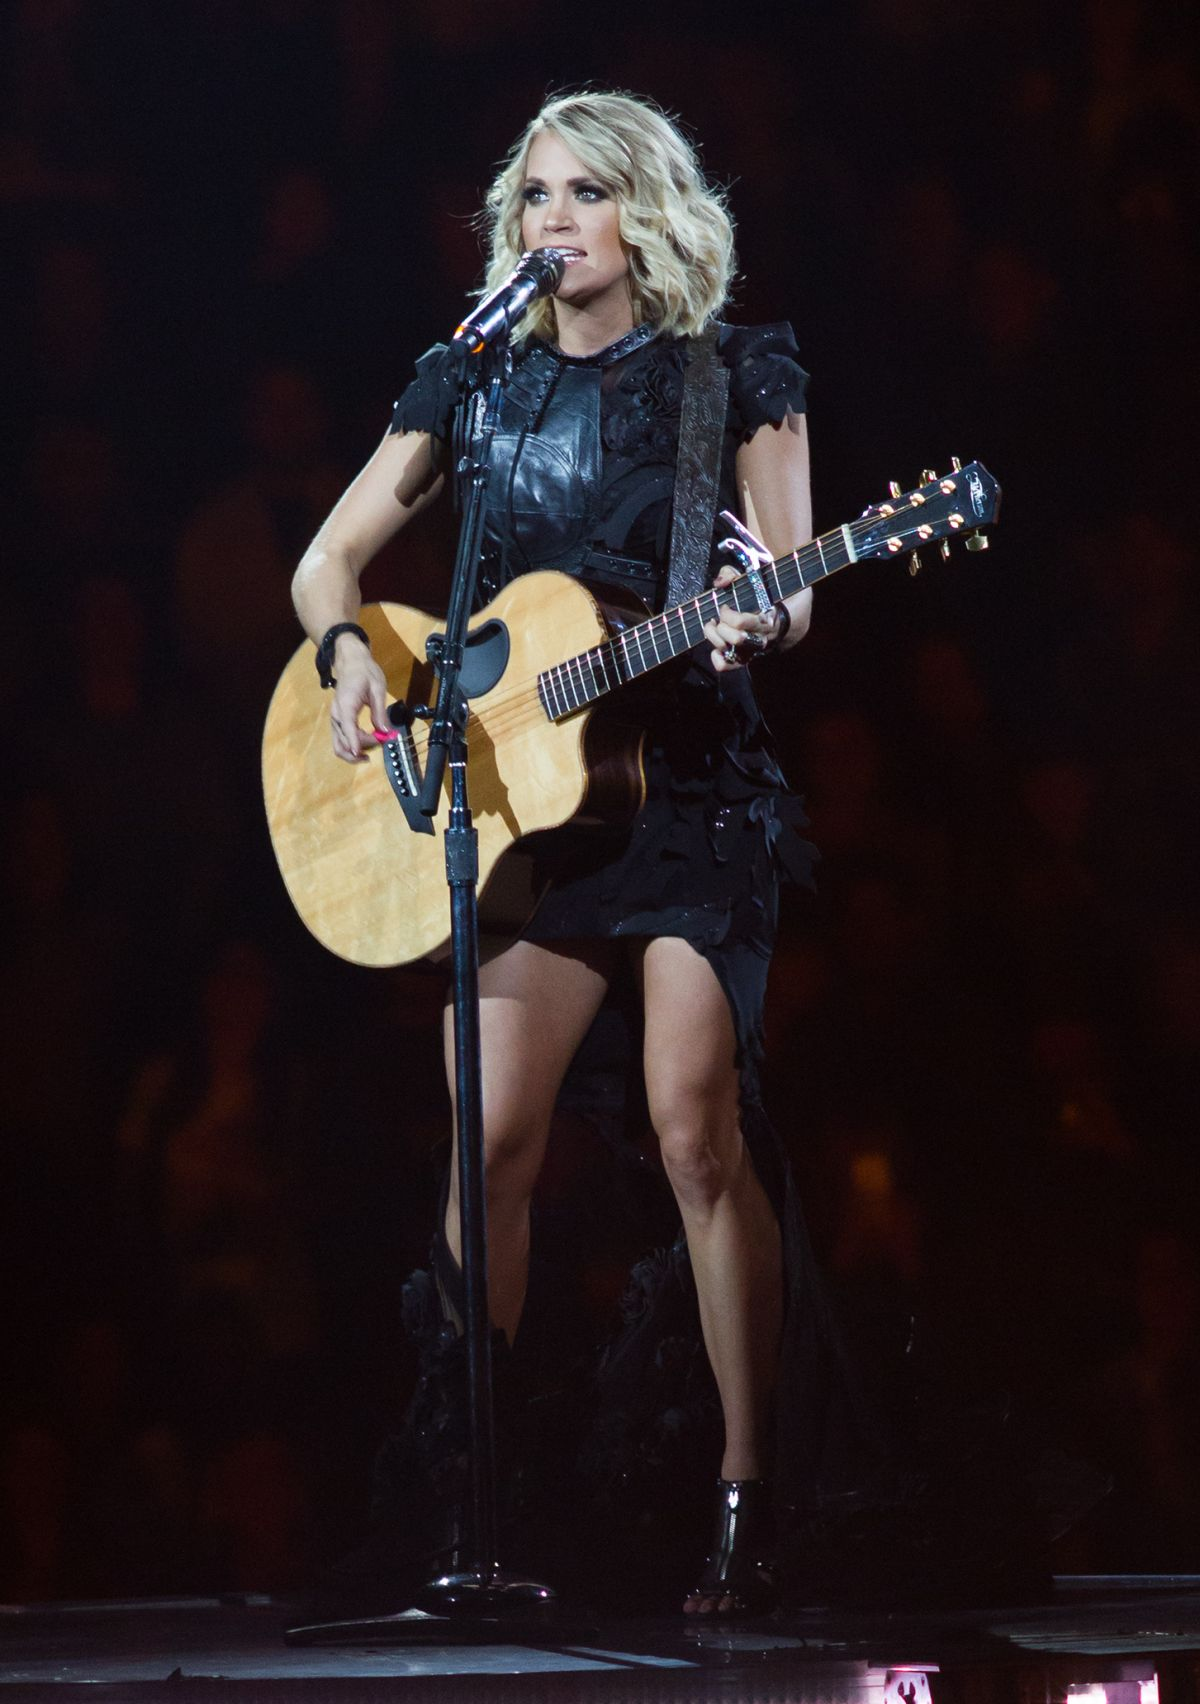 CARRIE UNDERWOOD Performs At The Storyteller Tour At Madison Square Garden  In New York 10/